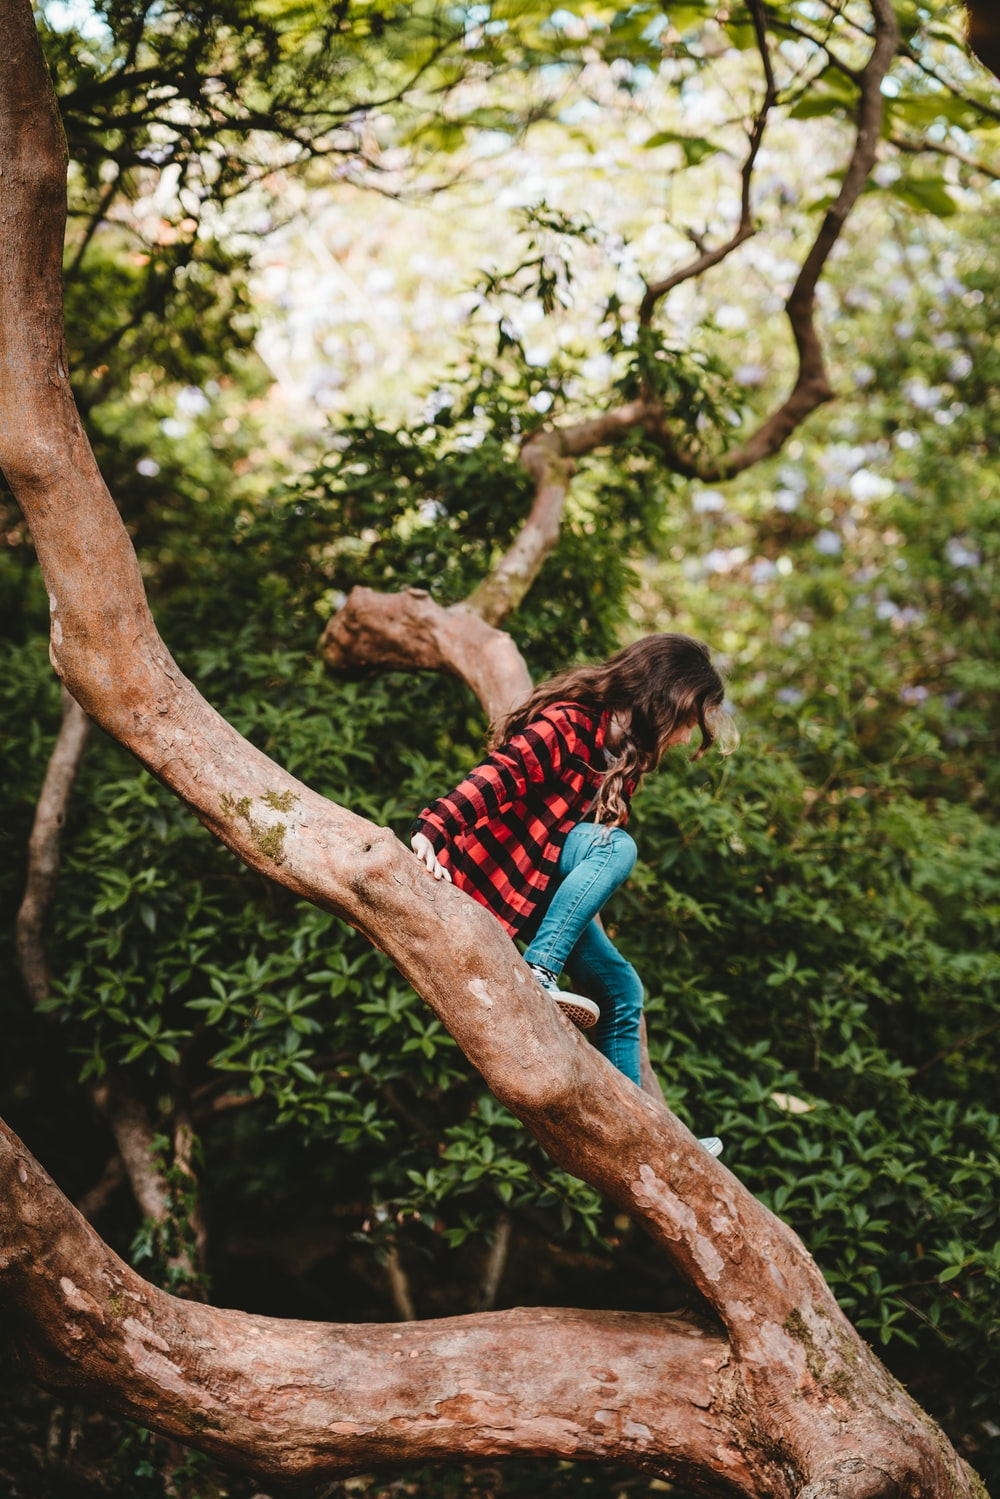 woman in red and black checkered top sitting on tree branch during daytime